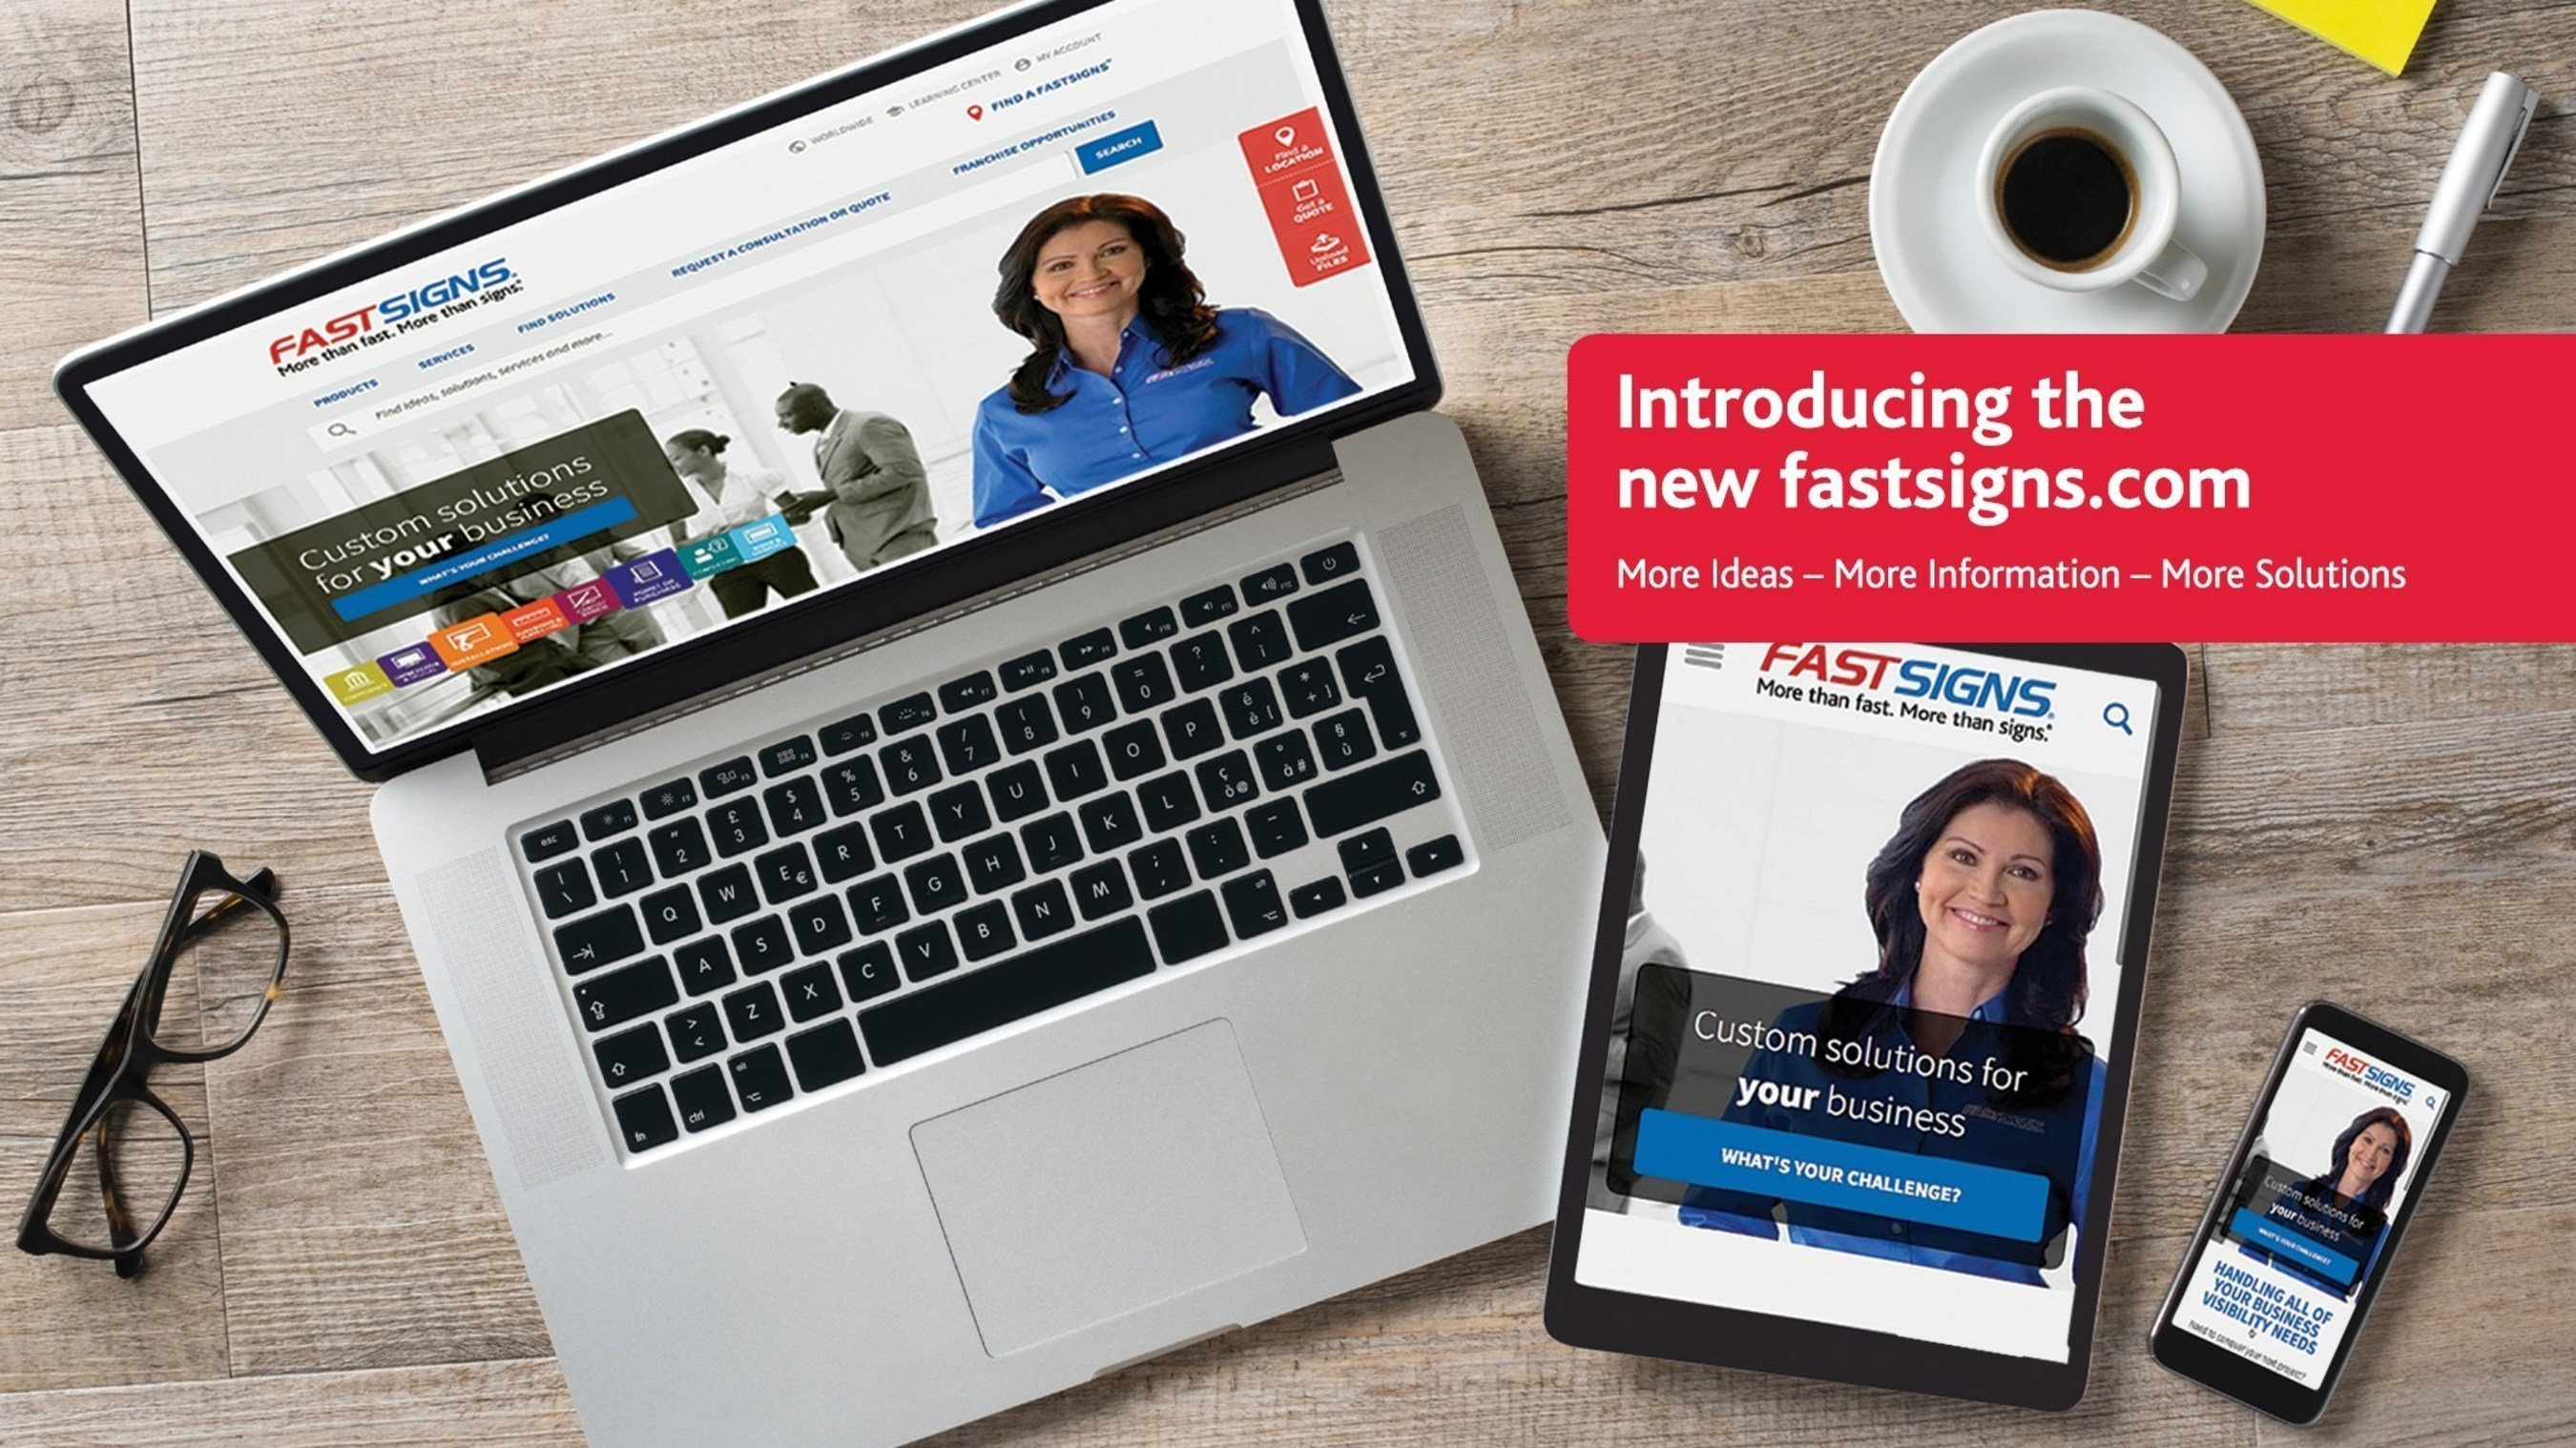 FASTSIGNS International, Inc., has launched the new fastsigns.com responsive design website, complete with new consultative and engaging features.